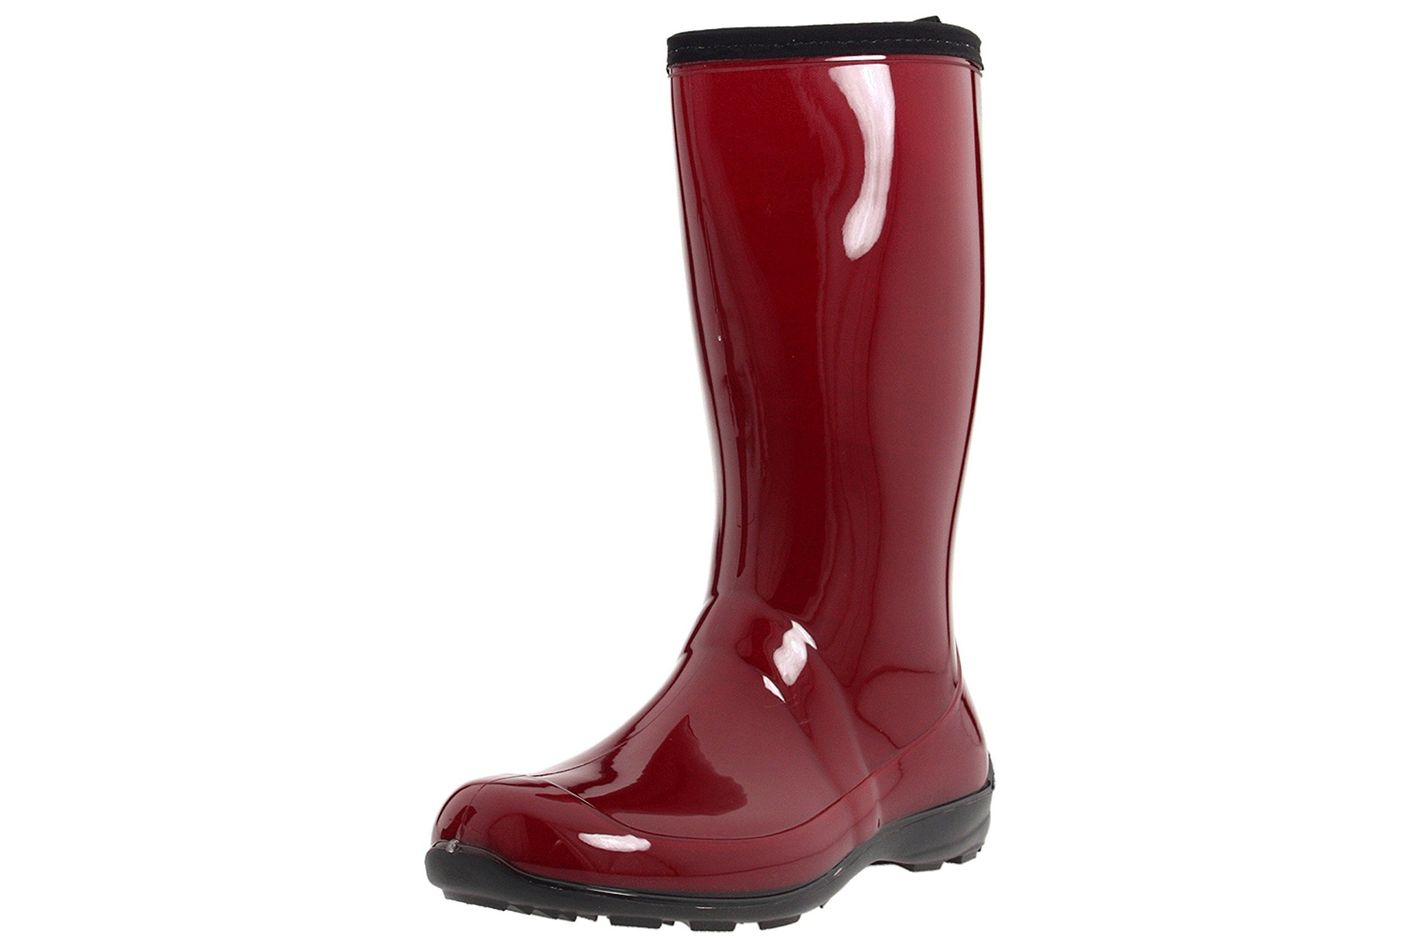 4351e5c484462 11 Best Rubber Boots for Women 2019